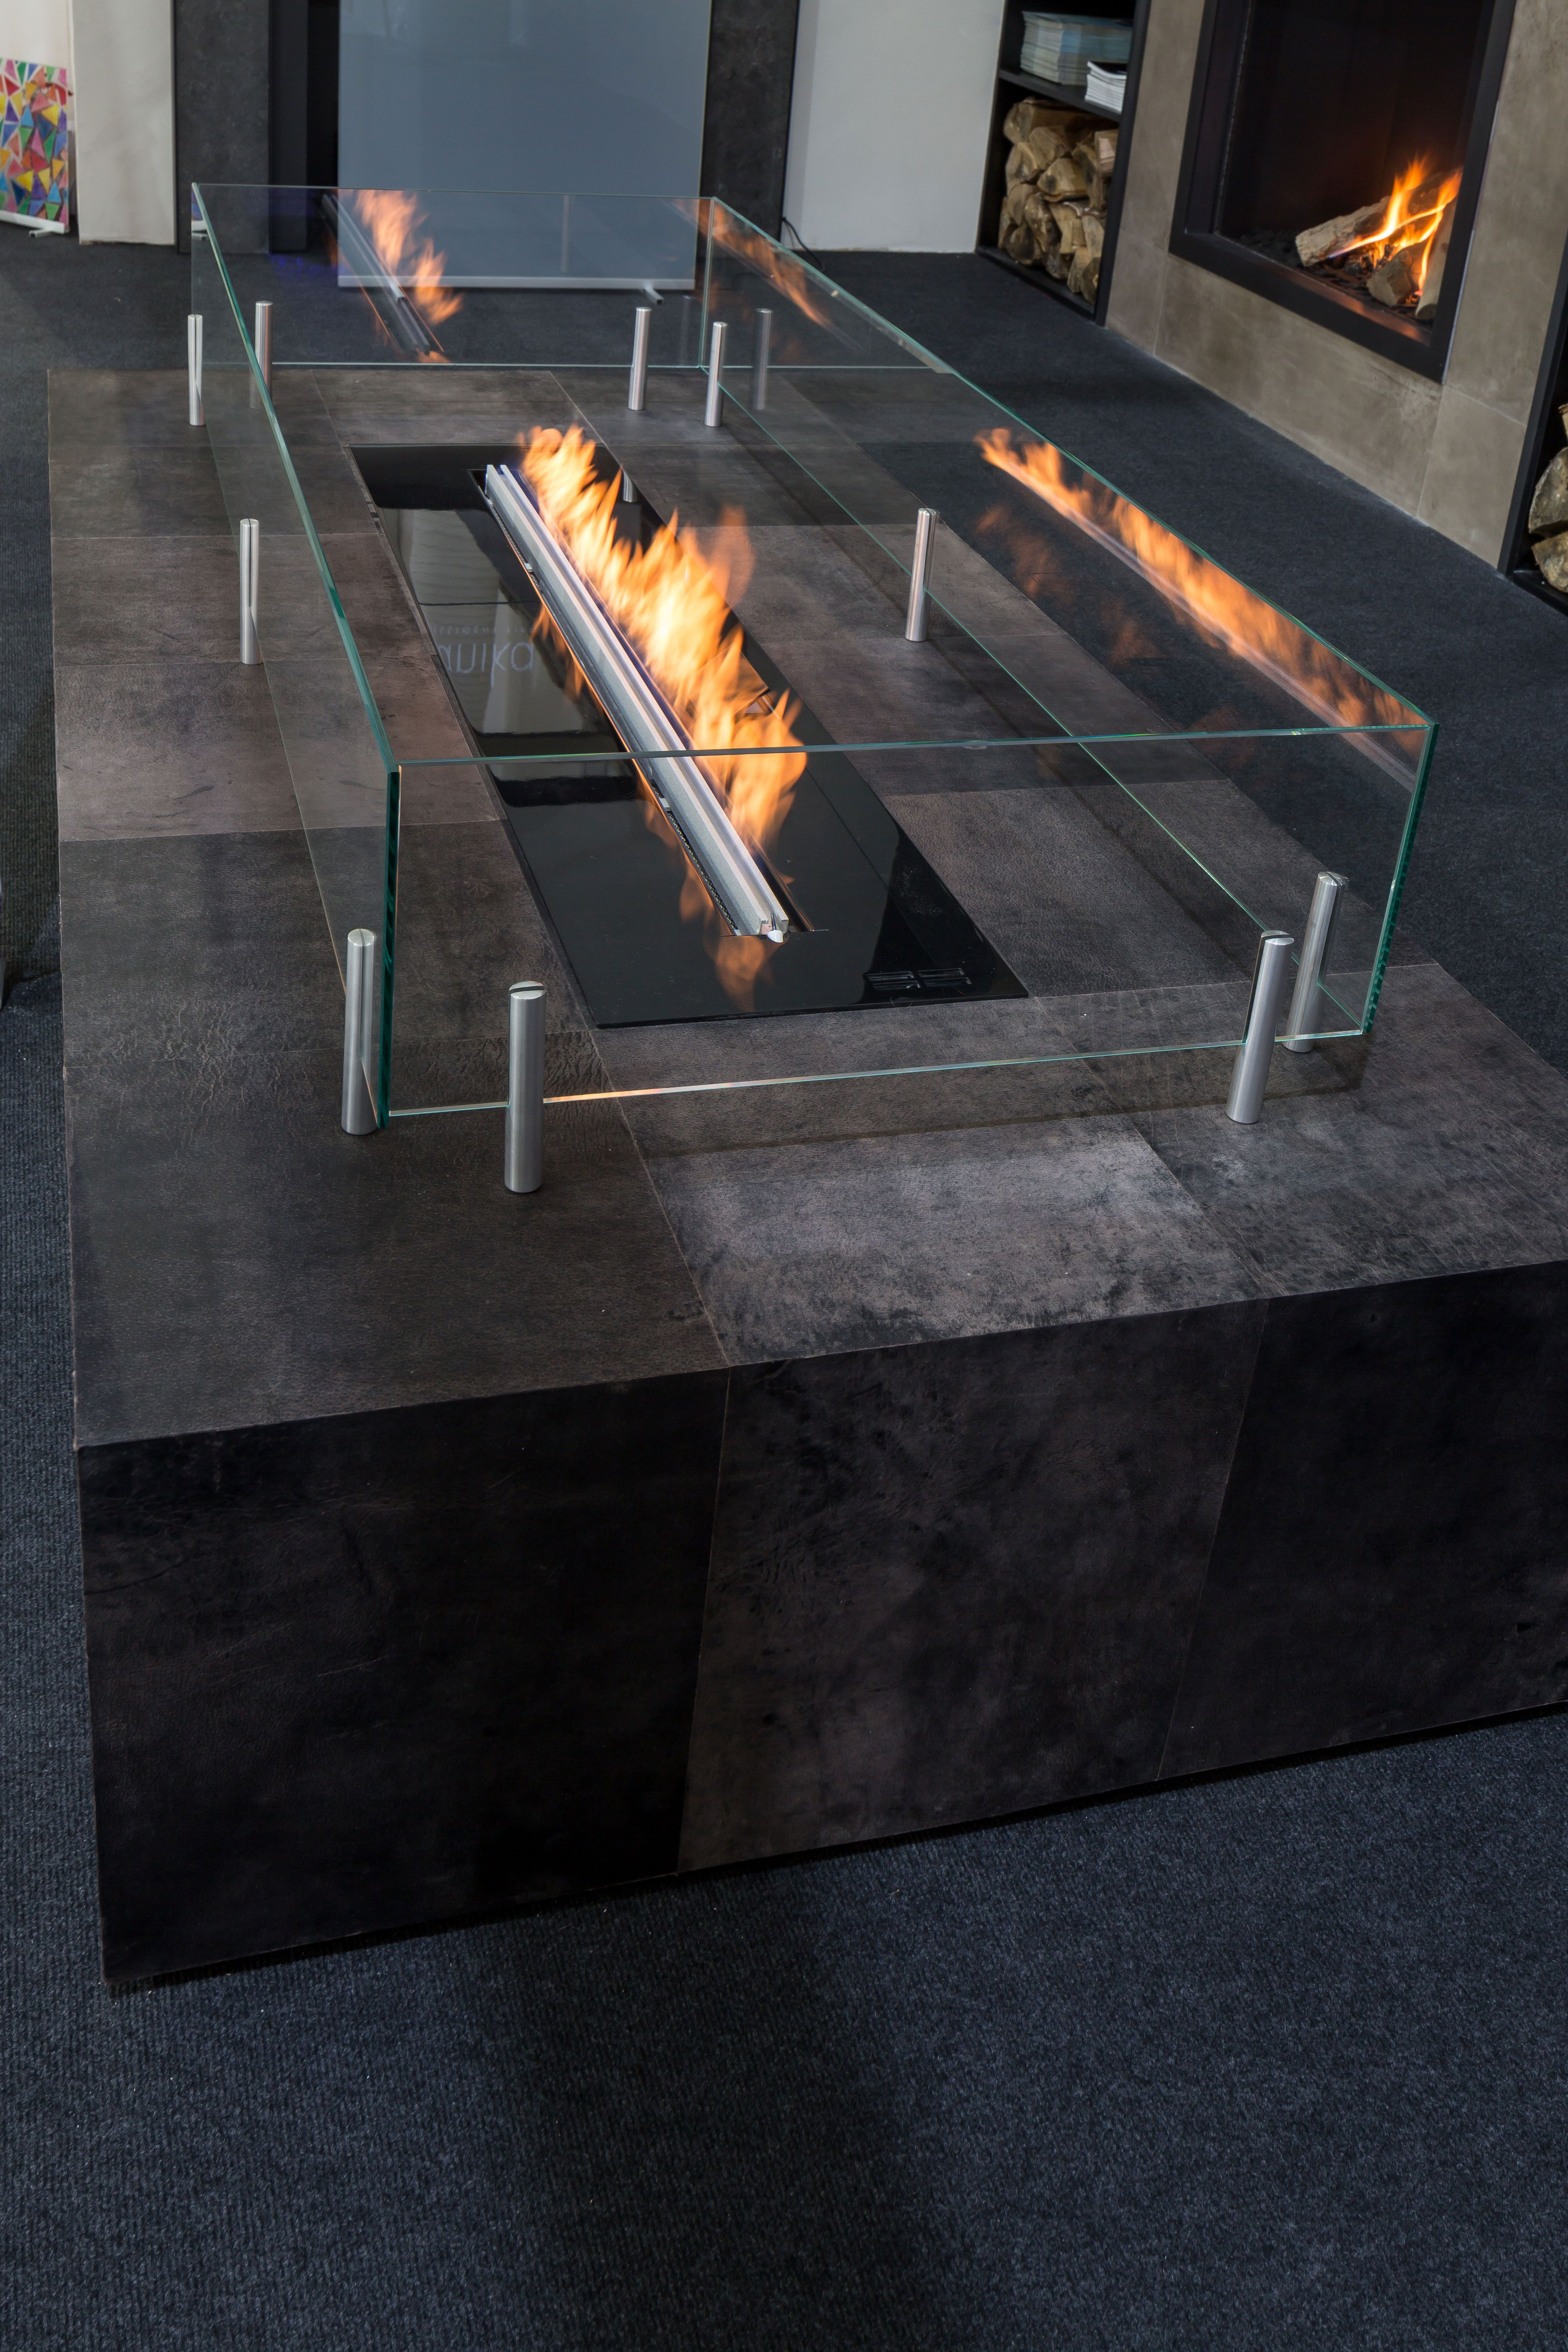 Leather Clad Custom Built Fire Table Modern Fireplace Freestanding Fireplace Fire Table [ 5760 x 3840 Pixel ]